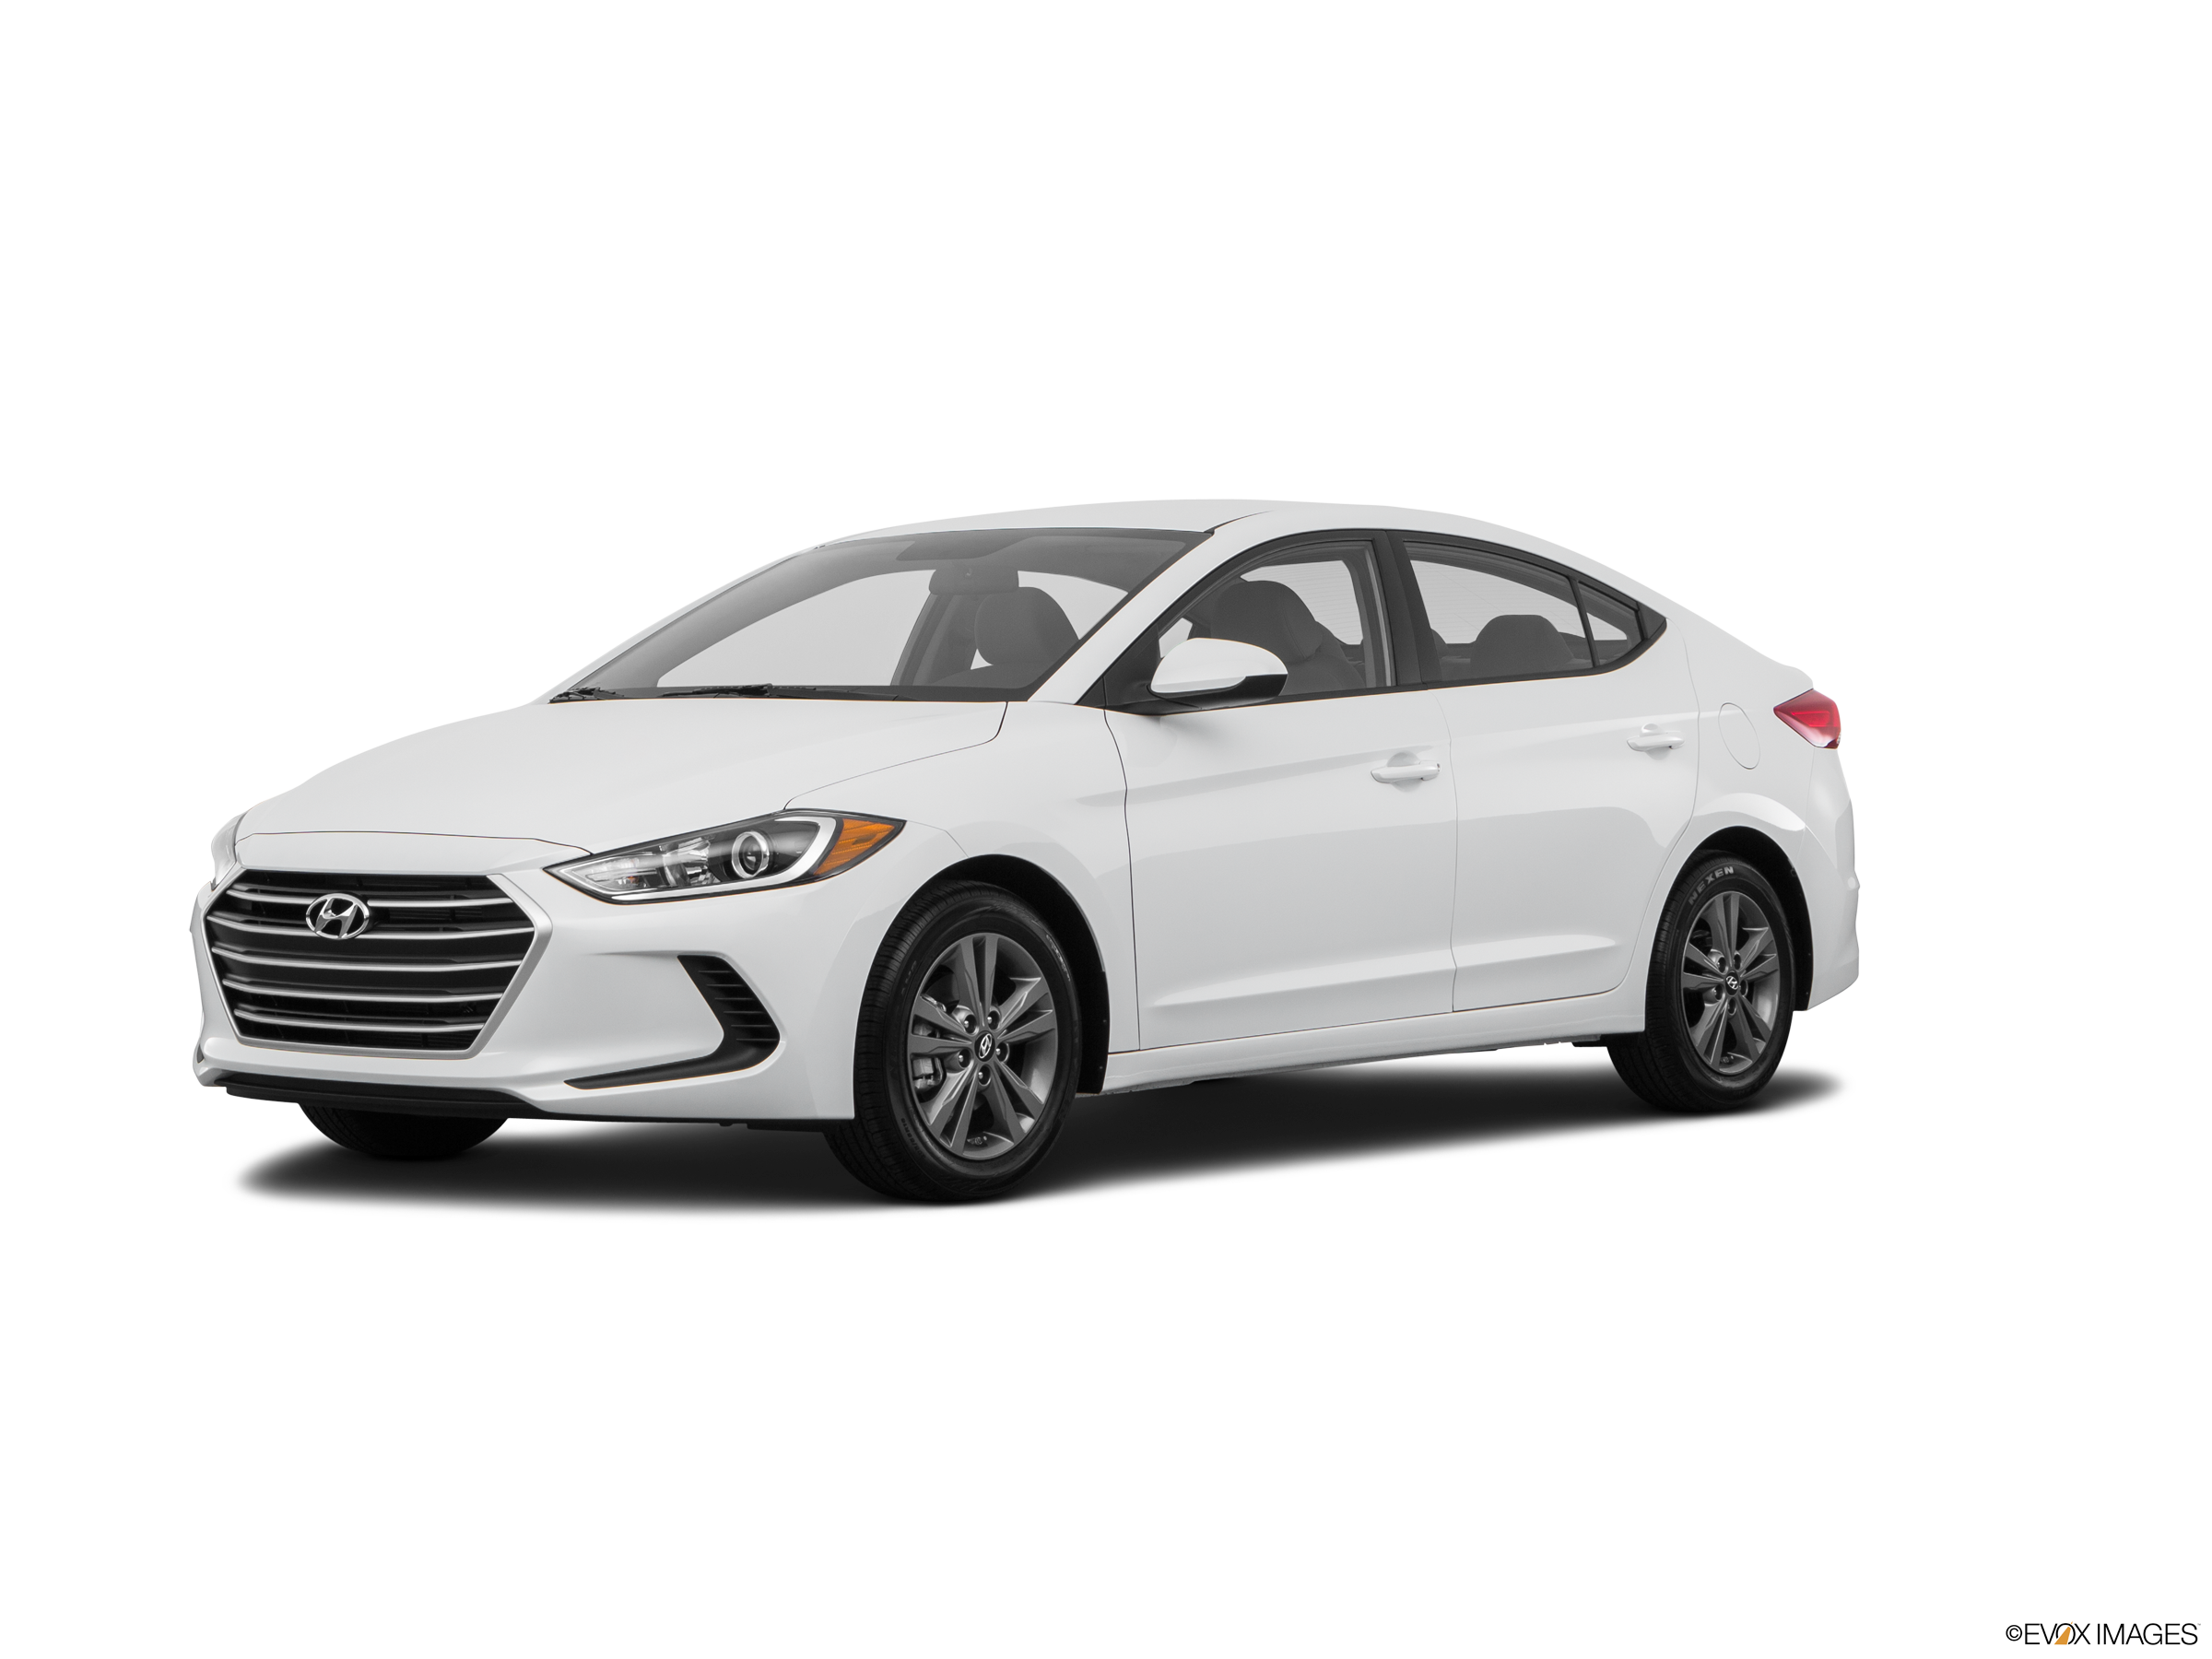 10 Best Sedans Under $25,000 - 2018 Hyundai Elantra